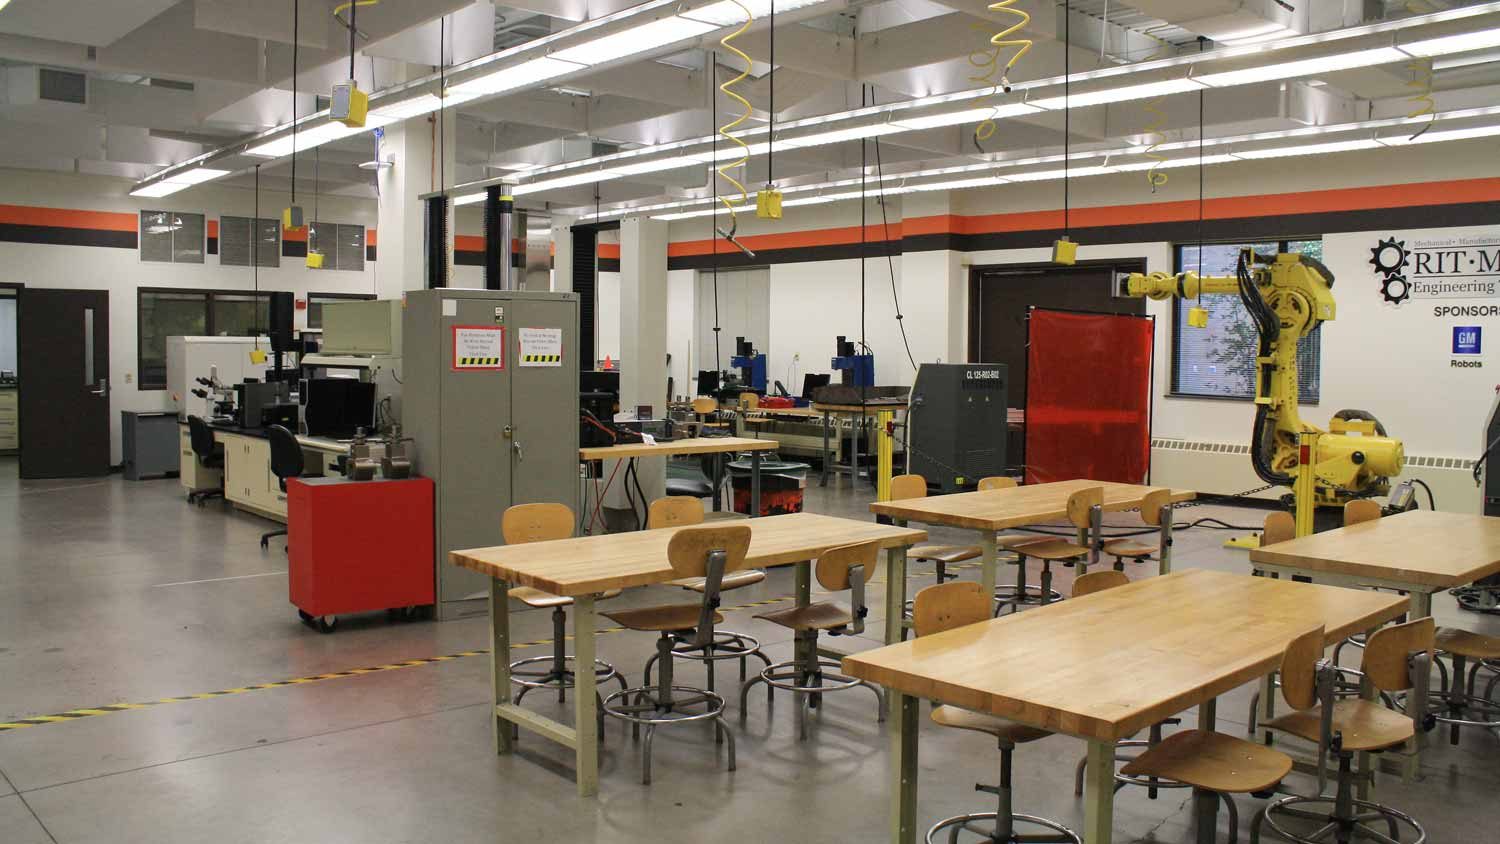 Four tables in a workspace with a robotic arm and other machines